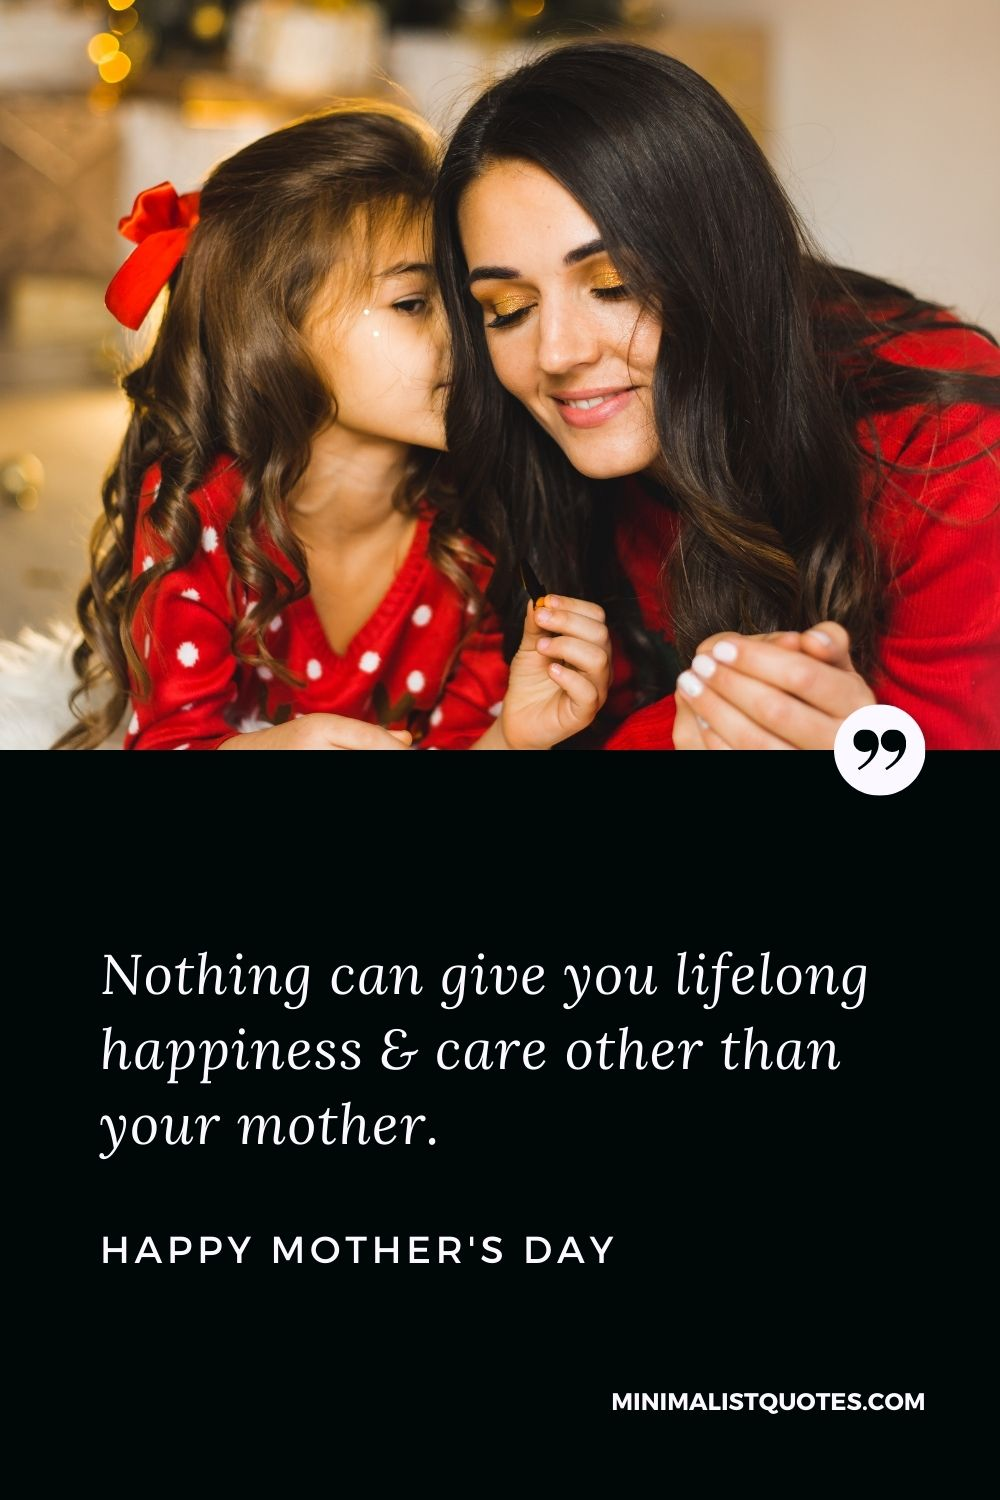 Mother's Day Wish & Message With Image: Nothing can give you lifelong happiness & care other than your mother. Happy Mother's Day!